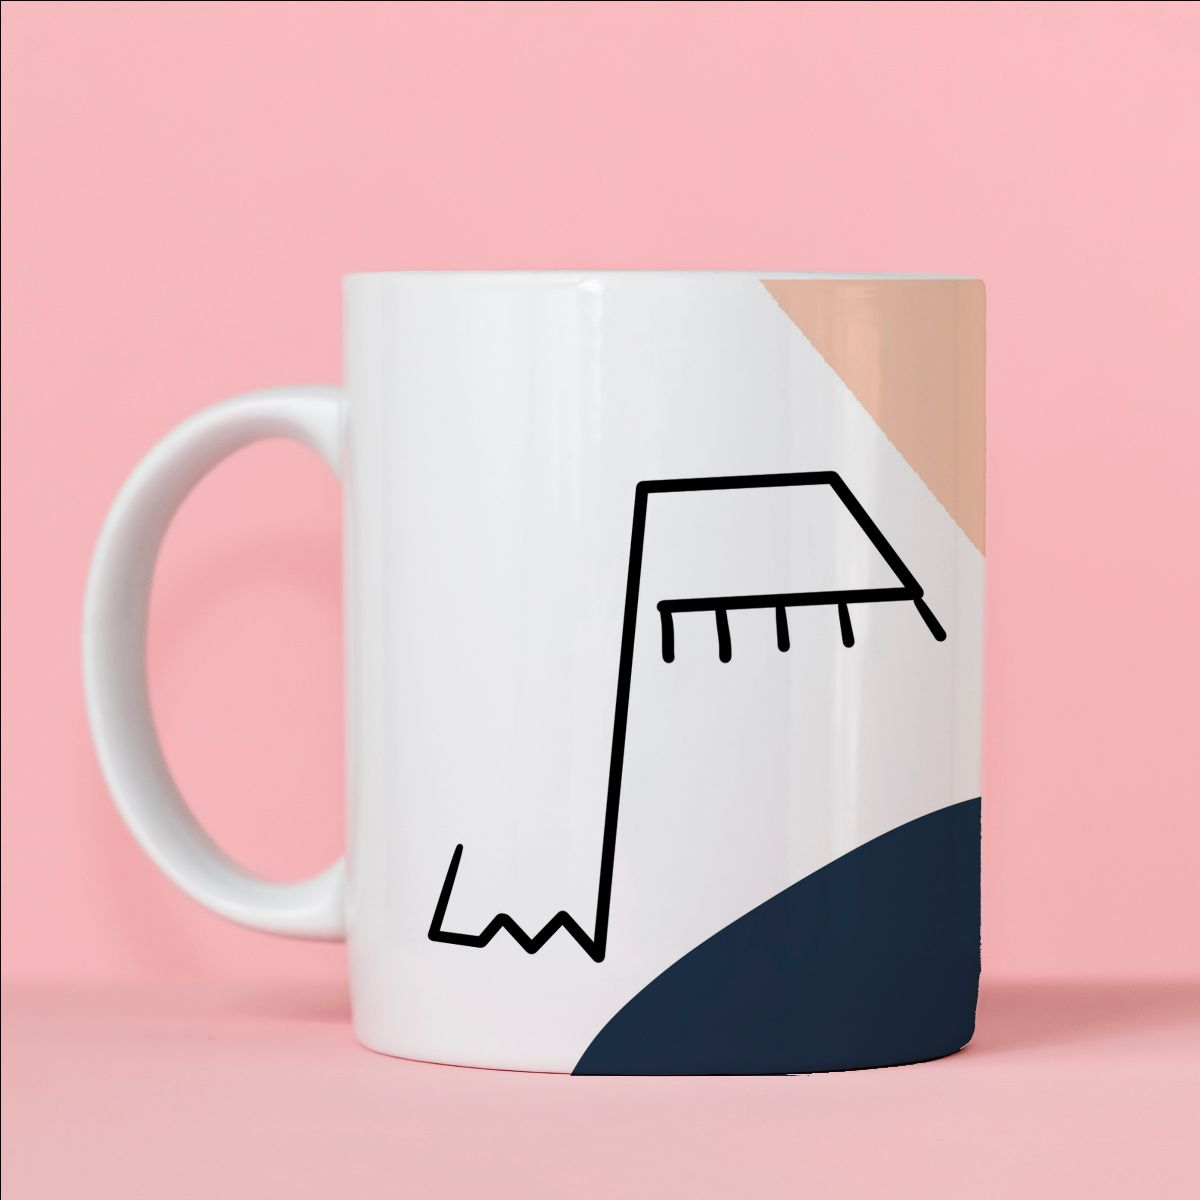 Unique mugs for your kitchen